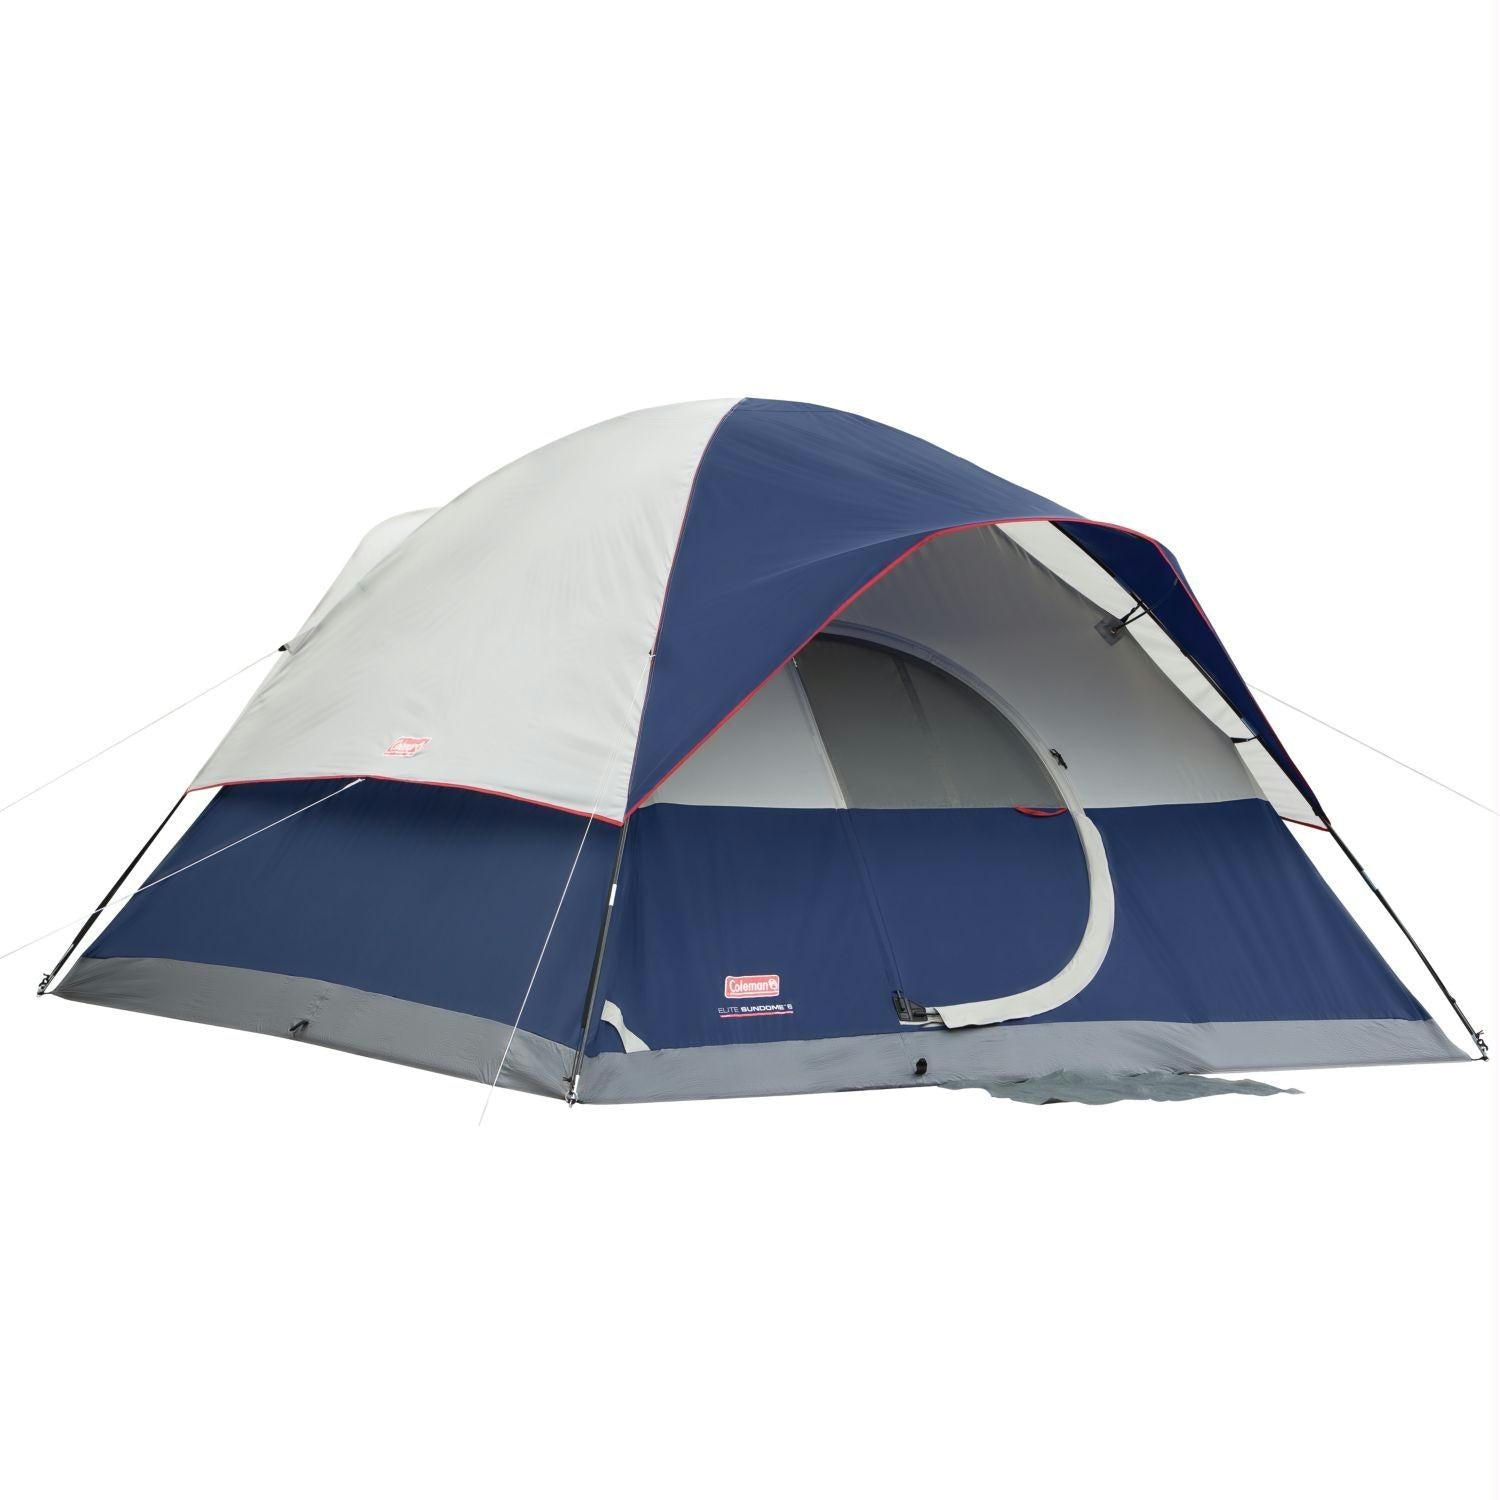 Coleman Tent 12X10 Elite Sundome 6 Person with LED Lighting - Survival Camping Pro